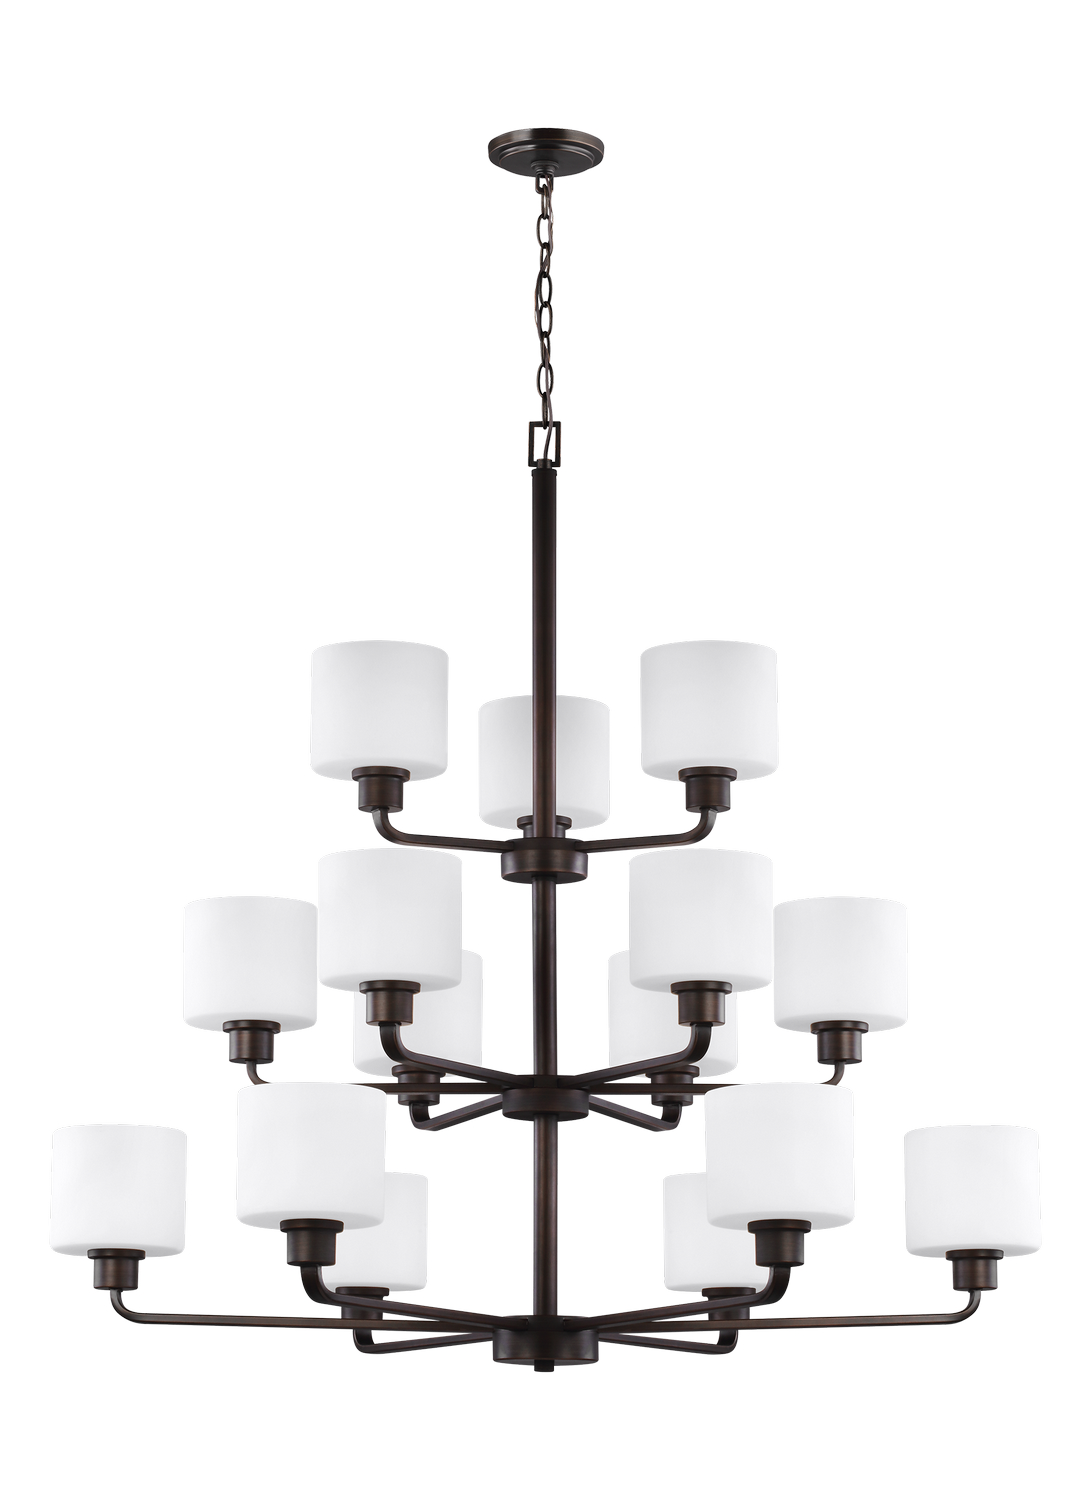 15 Light Chandelier from the Canfield collection by Seagull 3128815 710